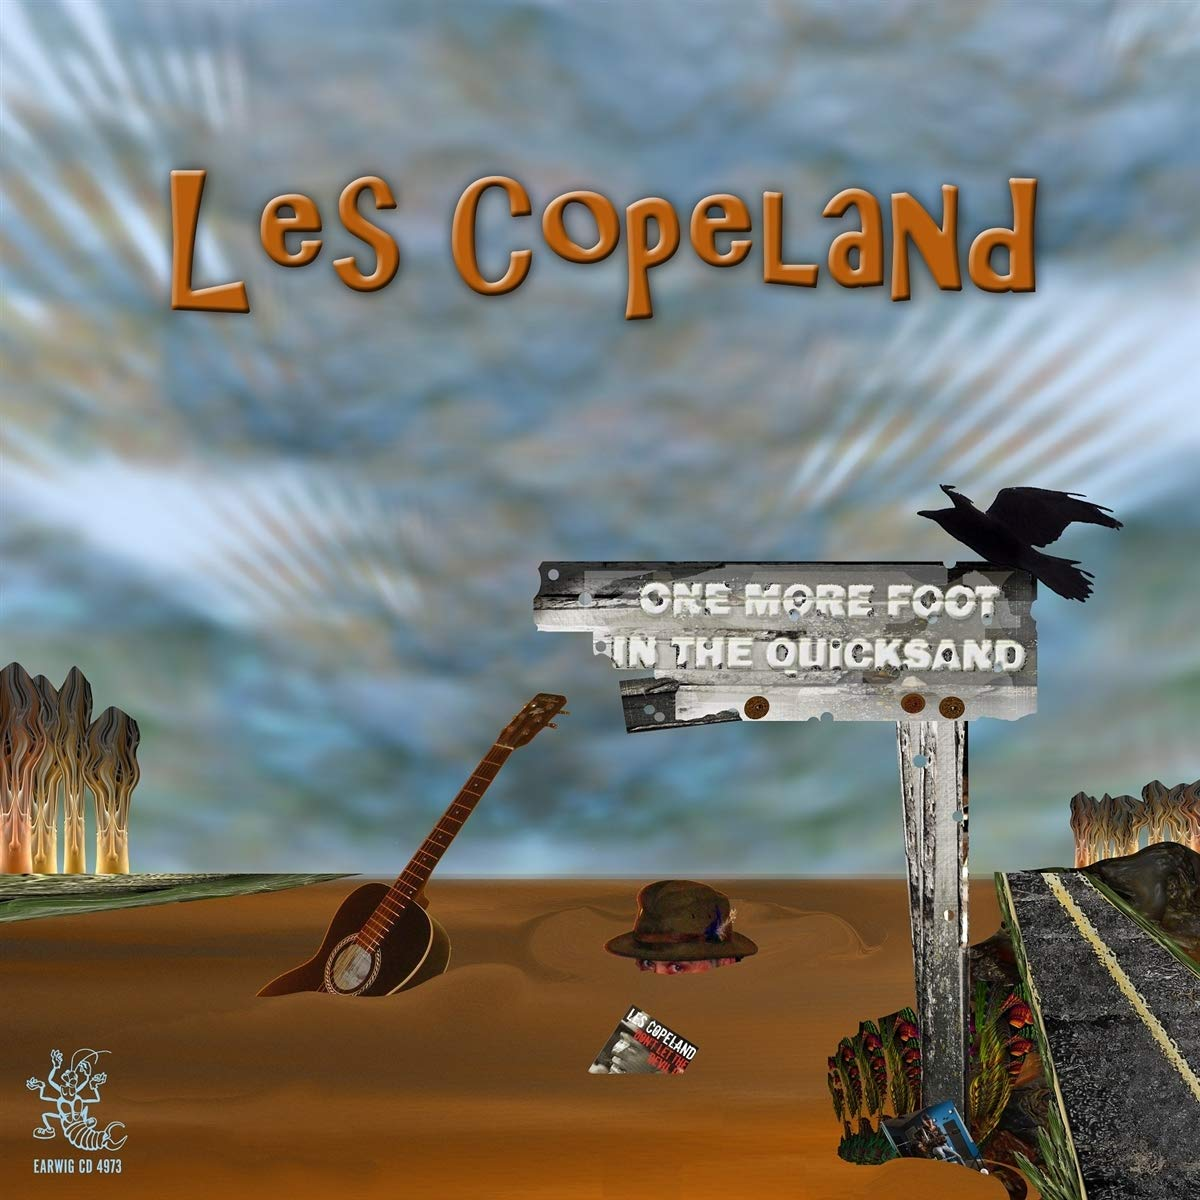 Les Copeland-One More Foot In The Quicksand-(EARWIG CD 4973)-CD-FLAC-2017-WRE